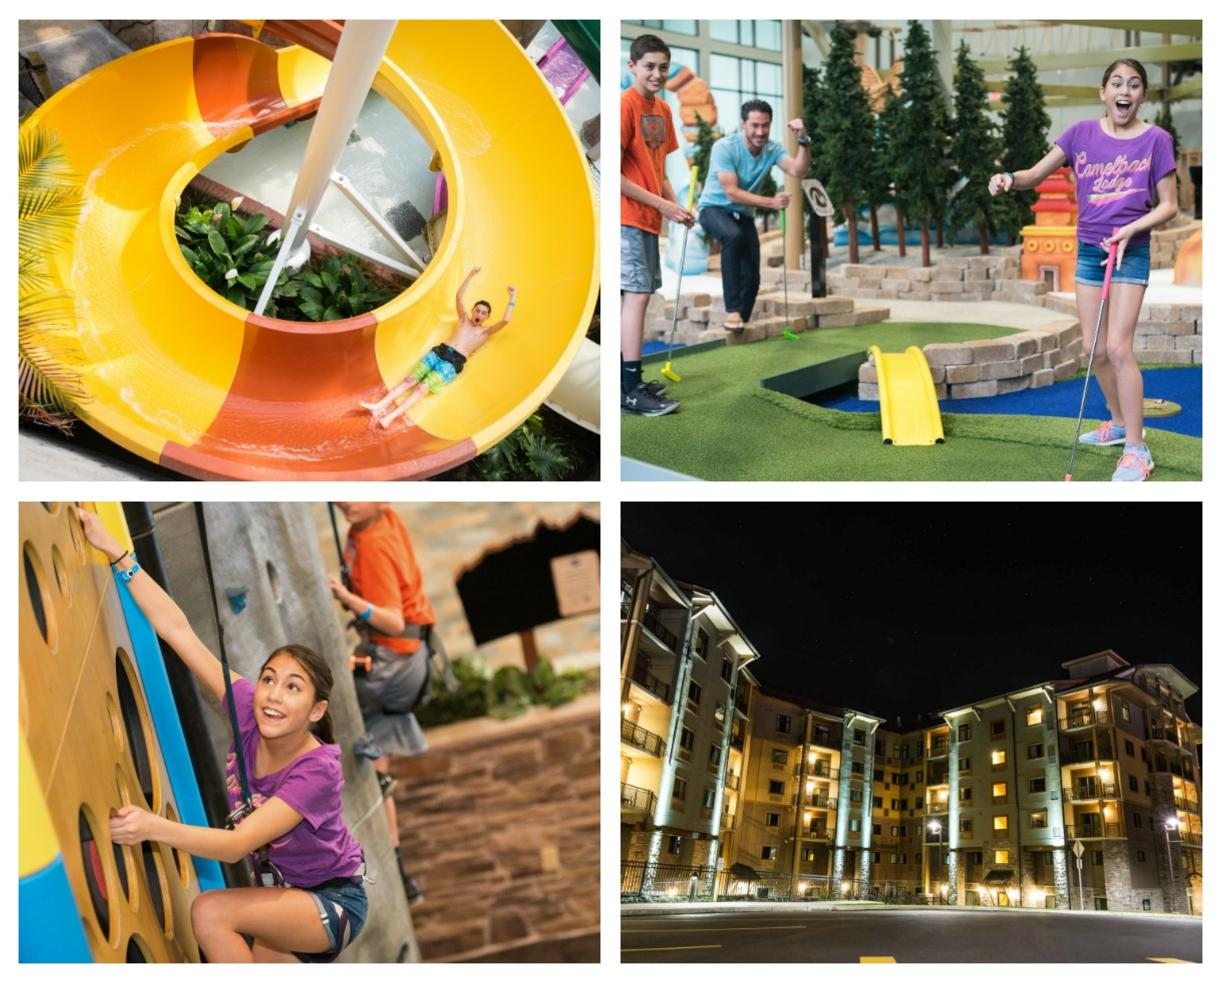 Up to 25% Off Camelback Resort Family Getaway: Hotel Stay, Water Park, Mountain Coaster, Breakfast & More! Pocono Mountains, PA